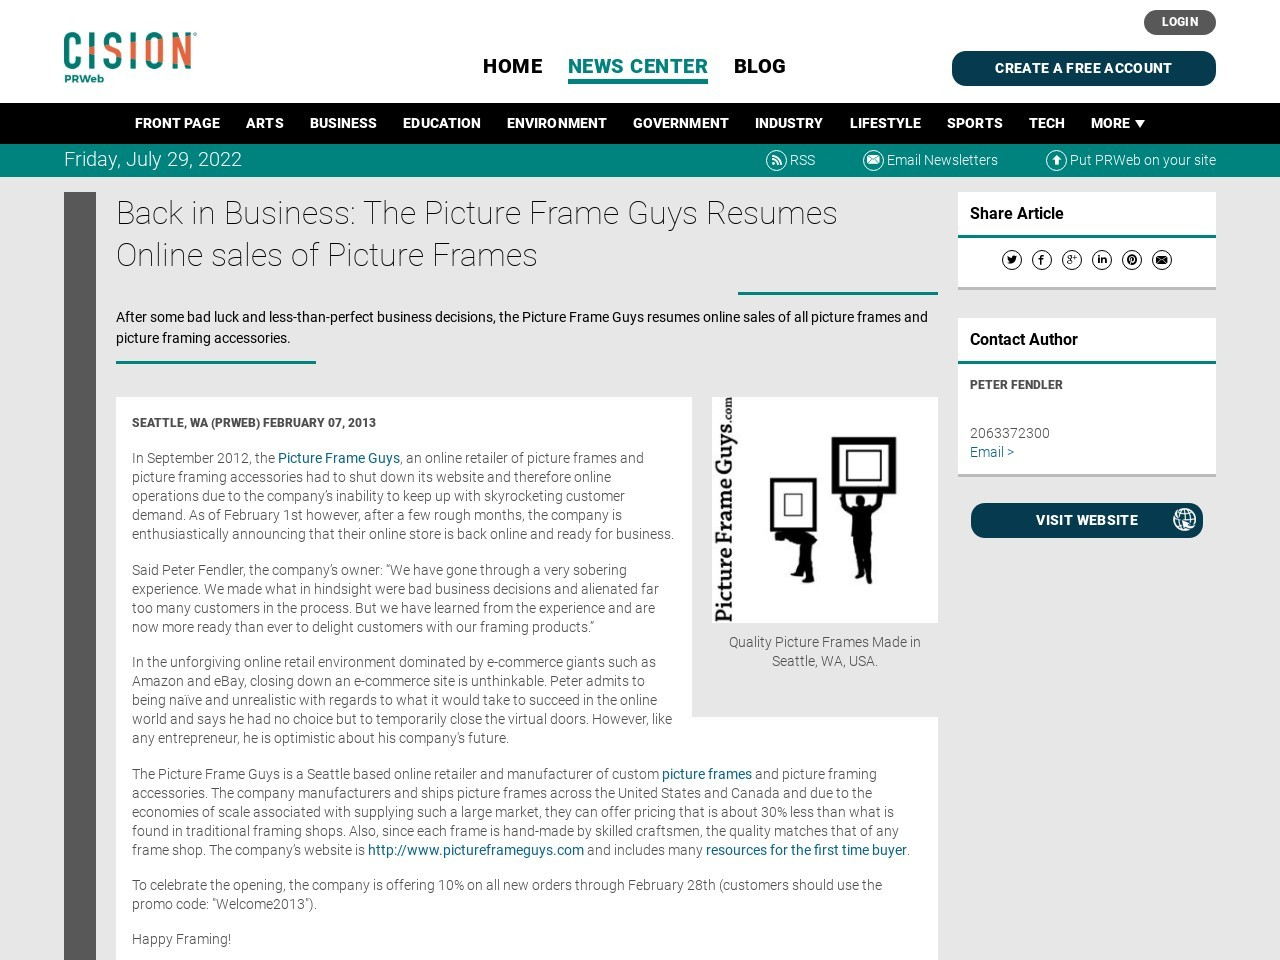 Back in Business: The Picture Frame Guys Resumes Online sales of Picture …